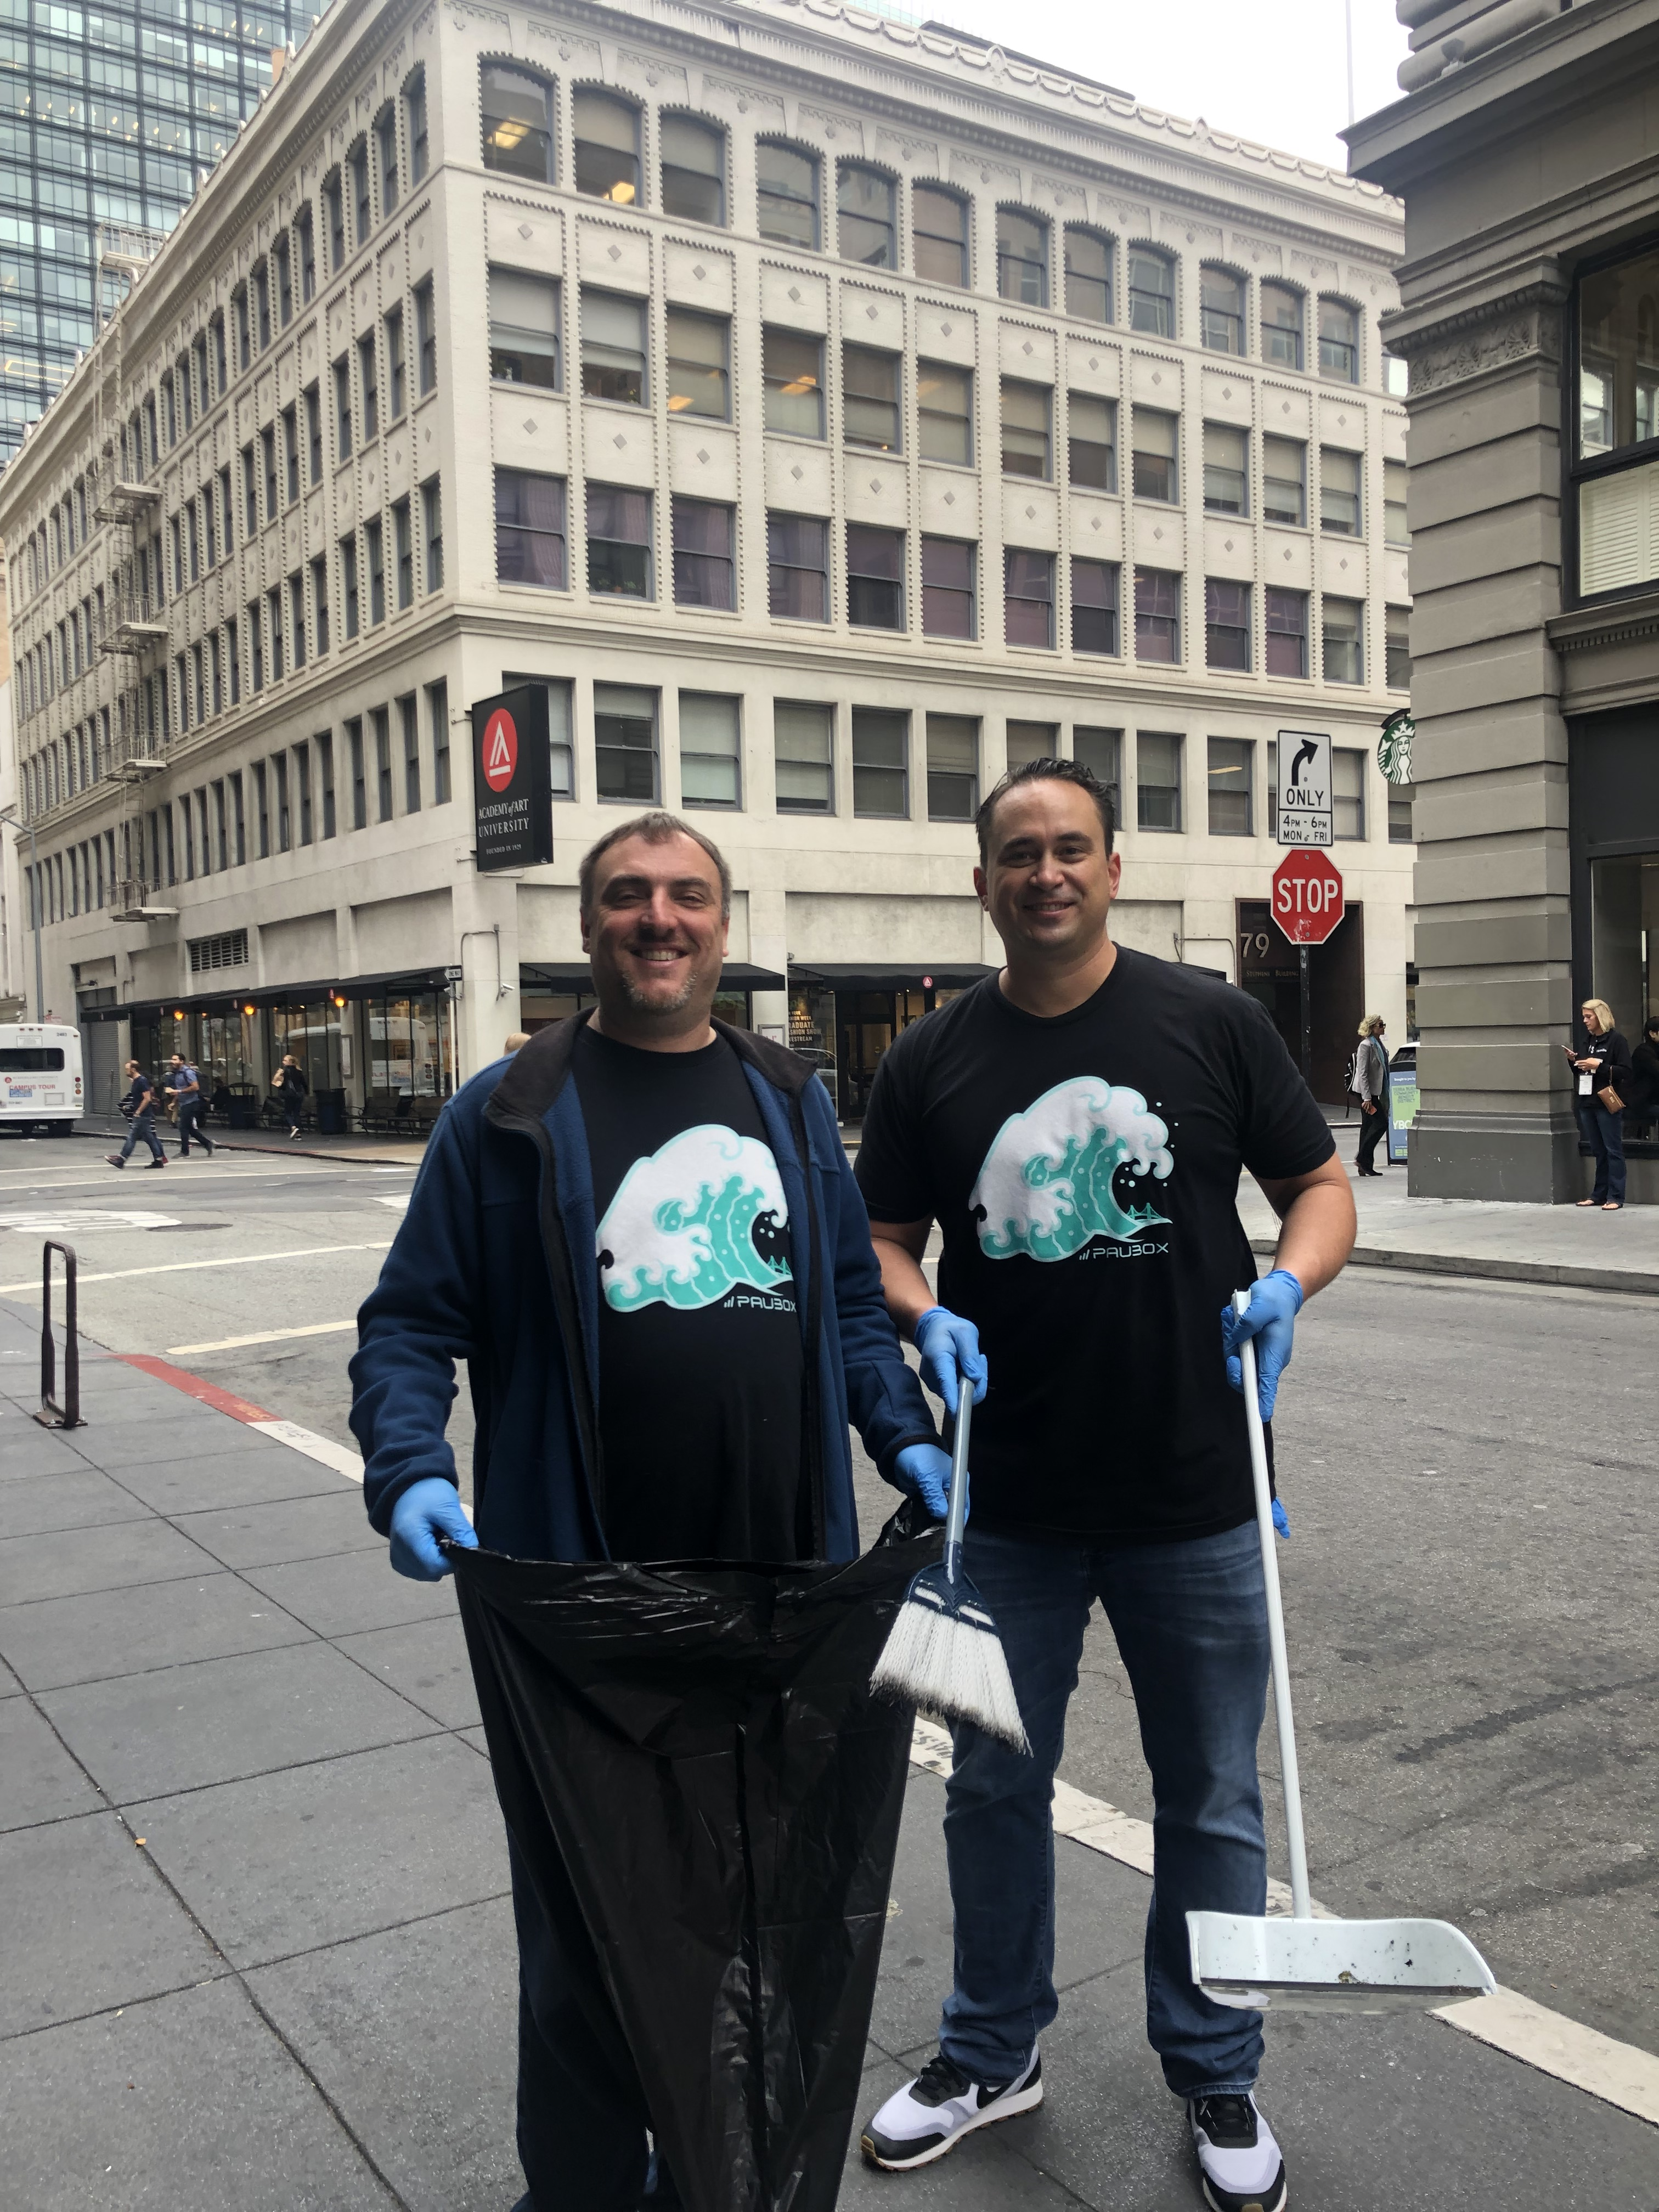 Paubox Community Service: Street Cleanup Around Our New Office - Robert Ogus & Hoala Greevy